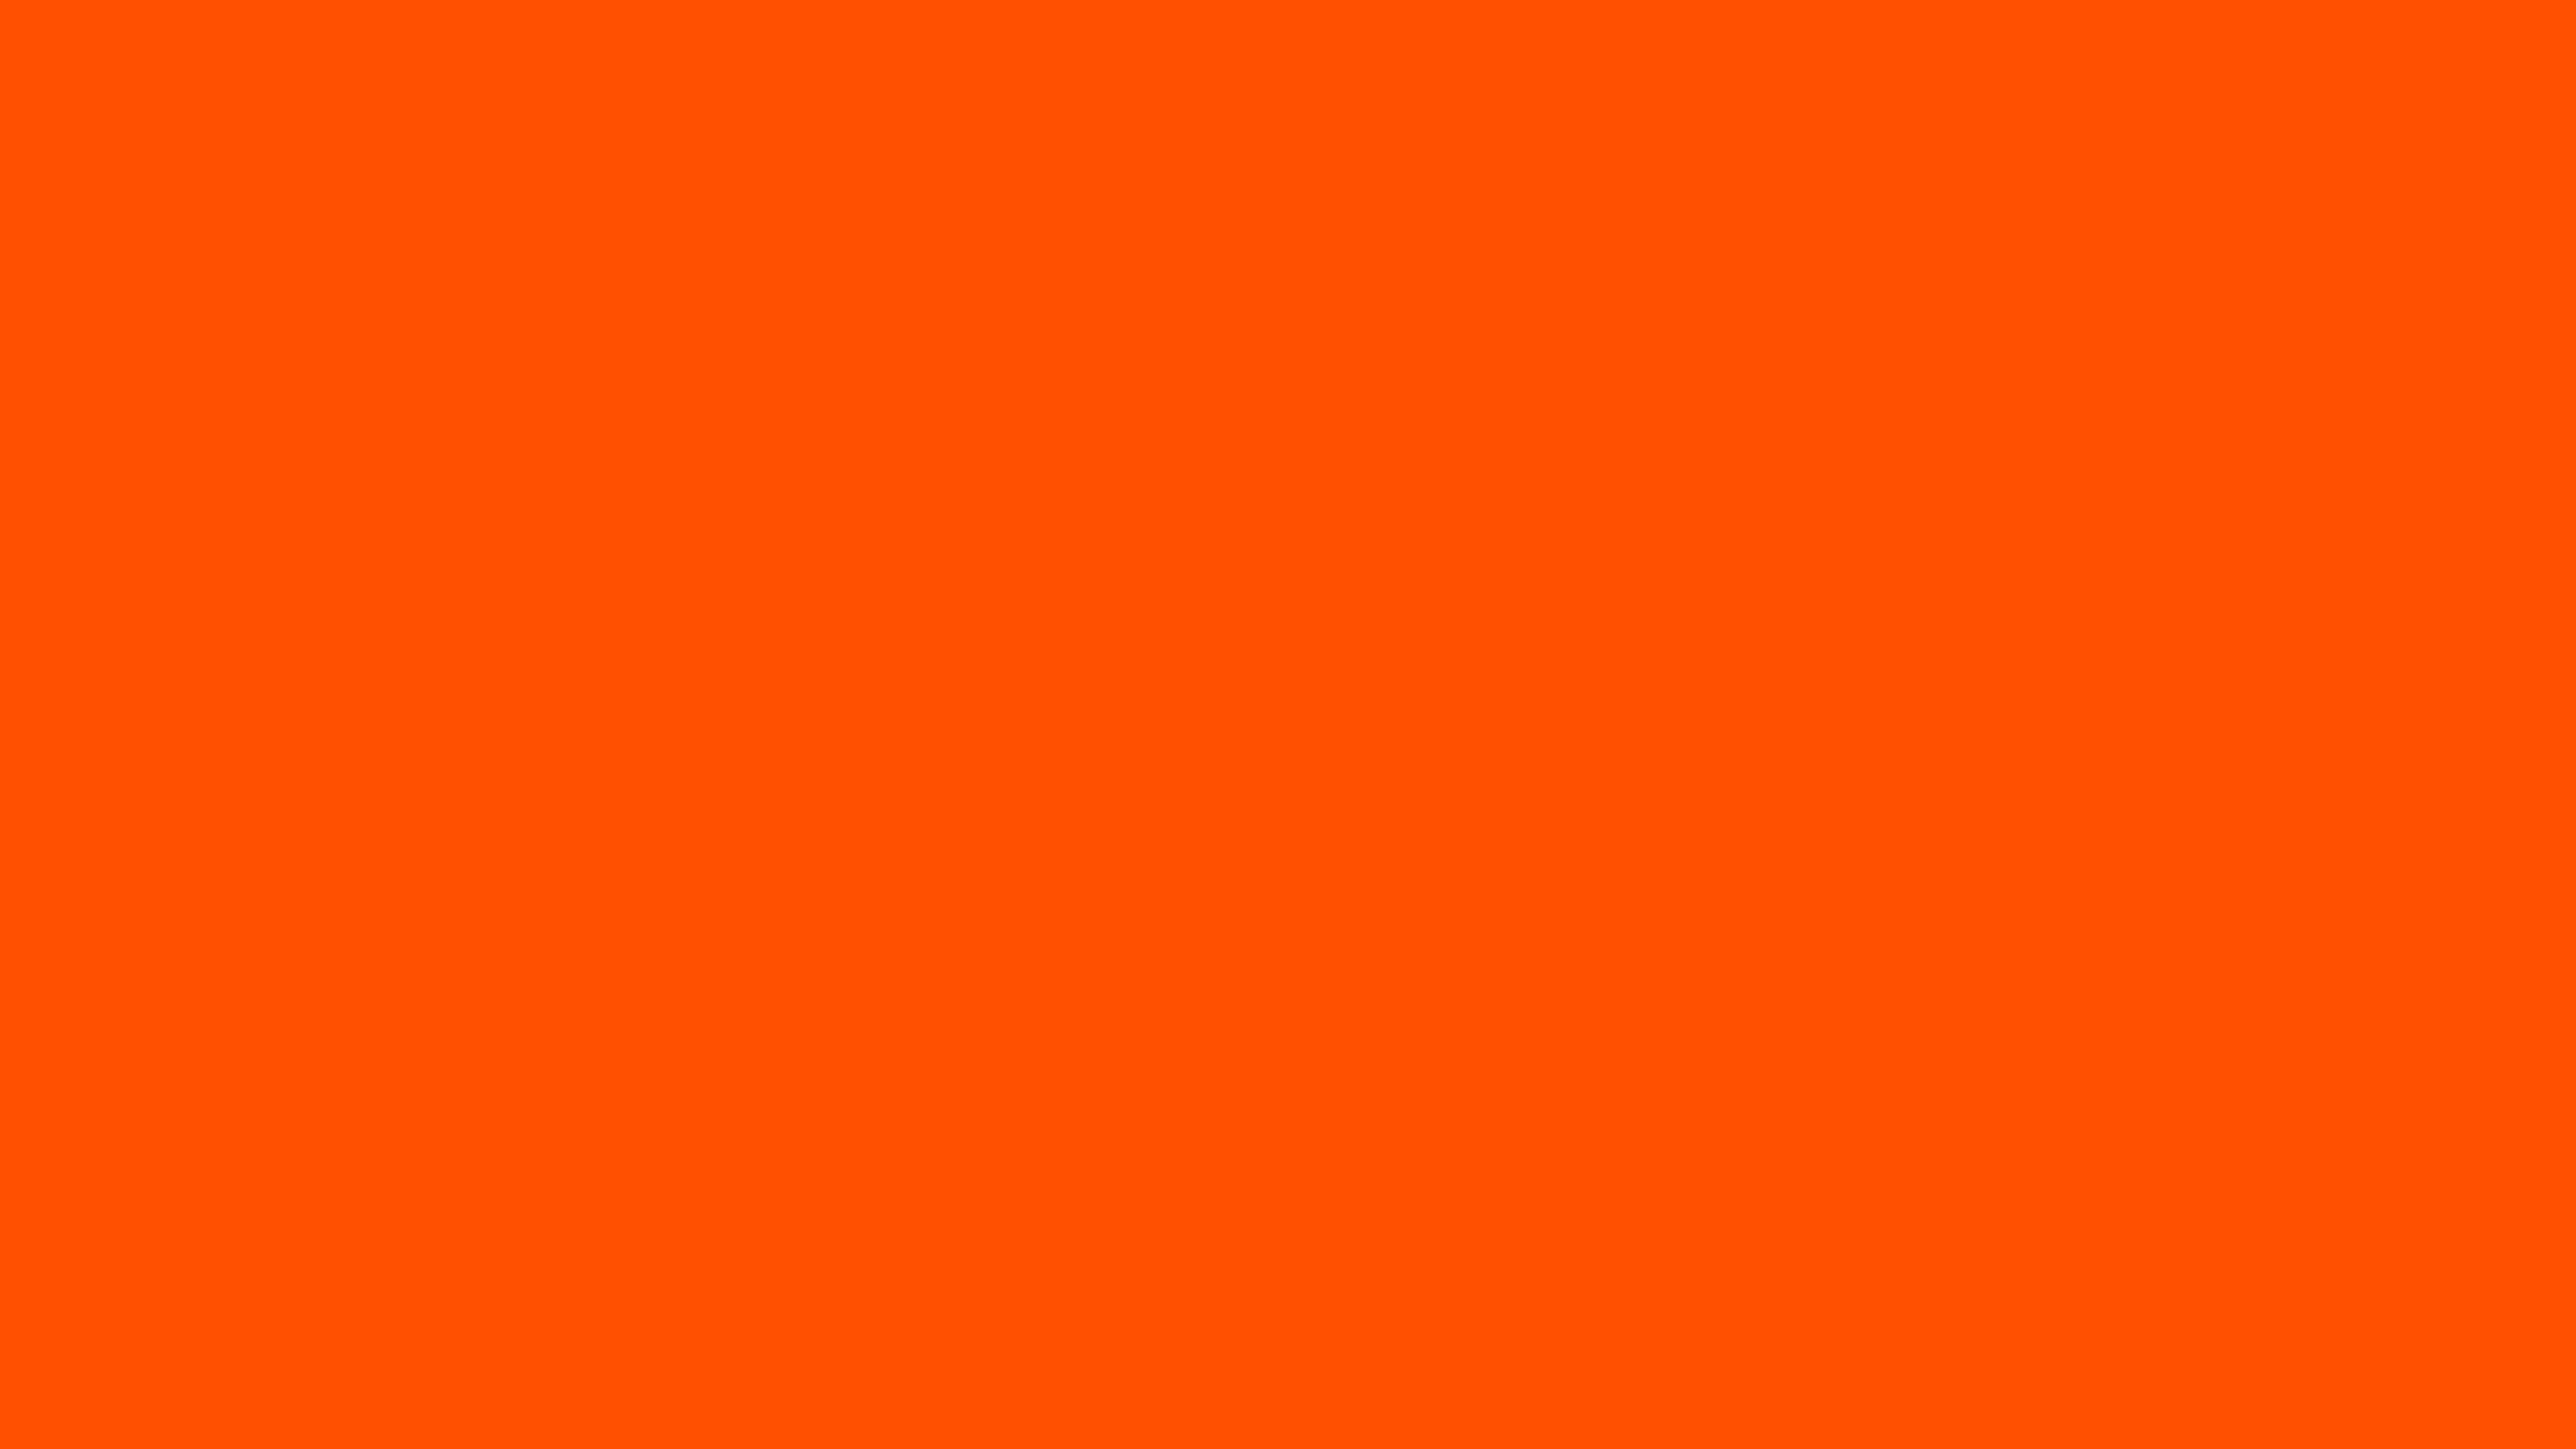 4096x2304 International Orange Aerospace Solid Color Background